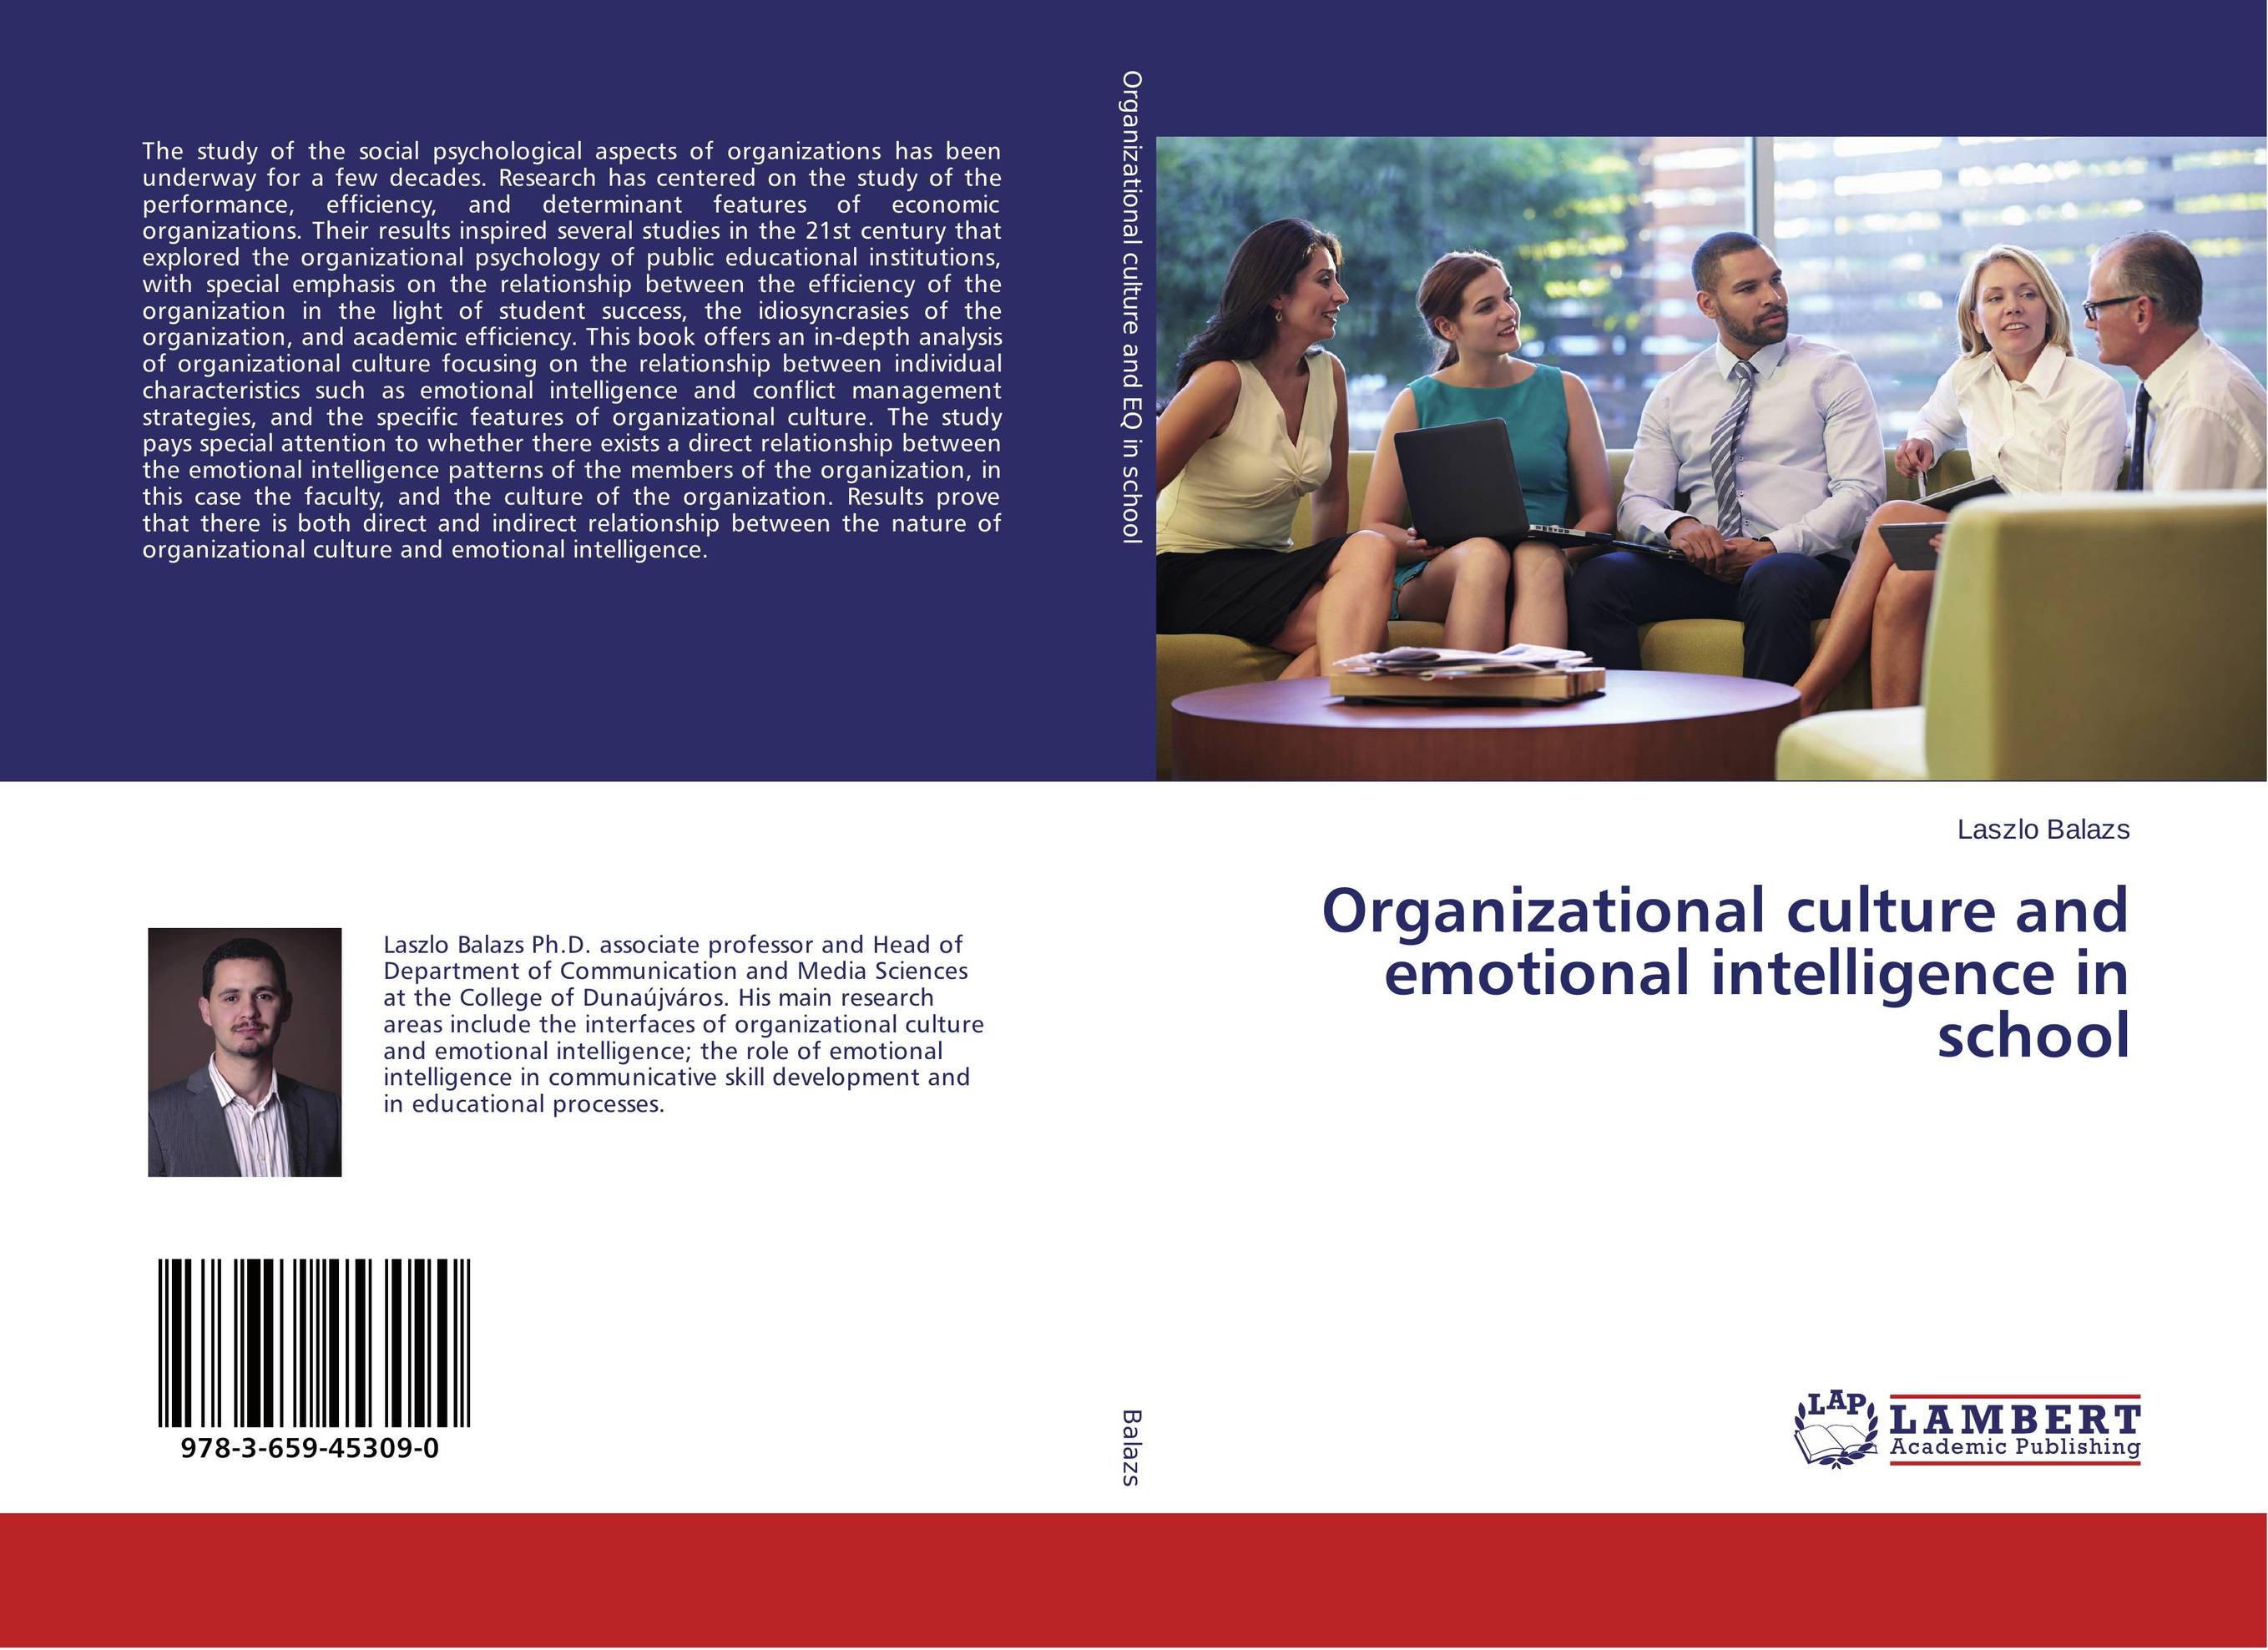 a study of emotional intelligence Emotional intelligence often referred also as emotional intelligence quotient is the ability of an individual to perceive, assess and manage emotions of his own self and of other people salovey and mayer (1990) define emotional intelligence as the ability to monitor one's own and others' feelings.